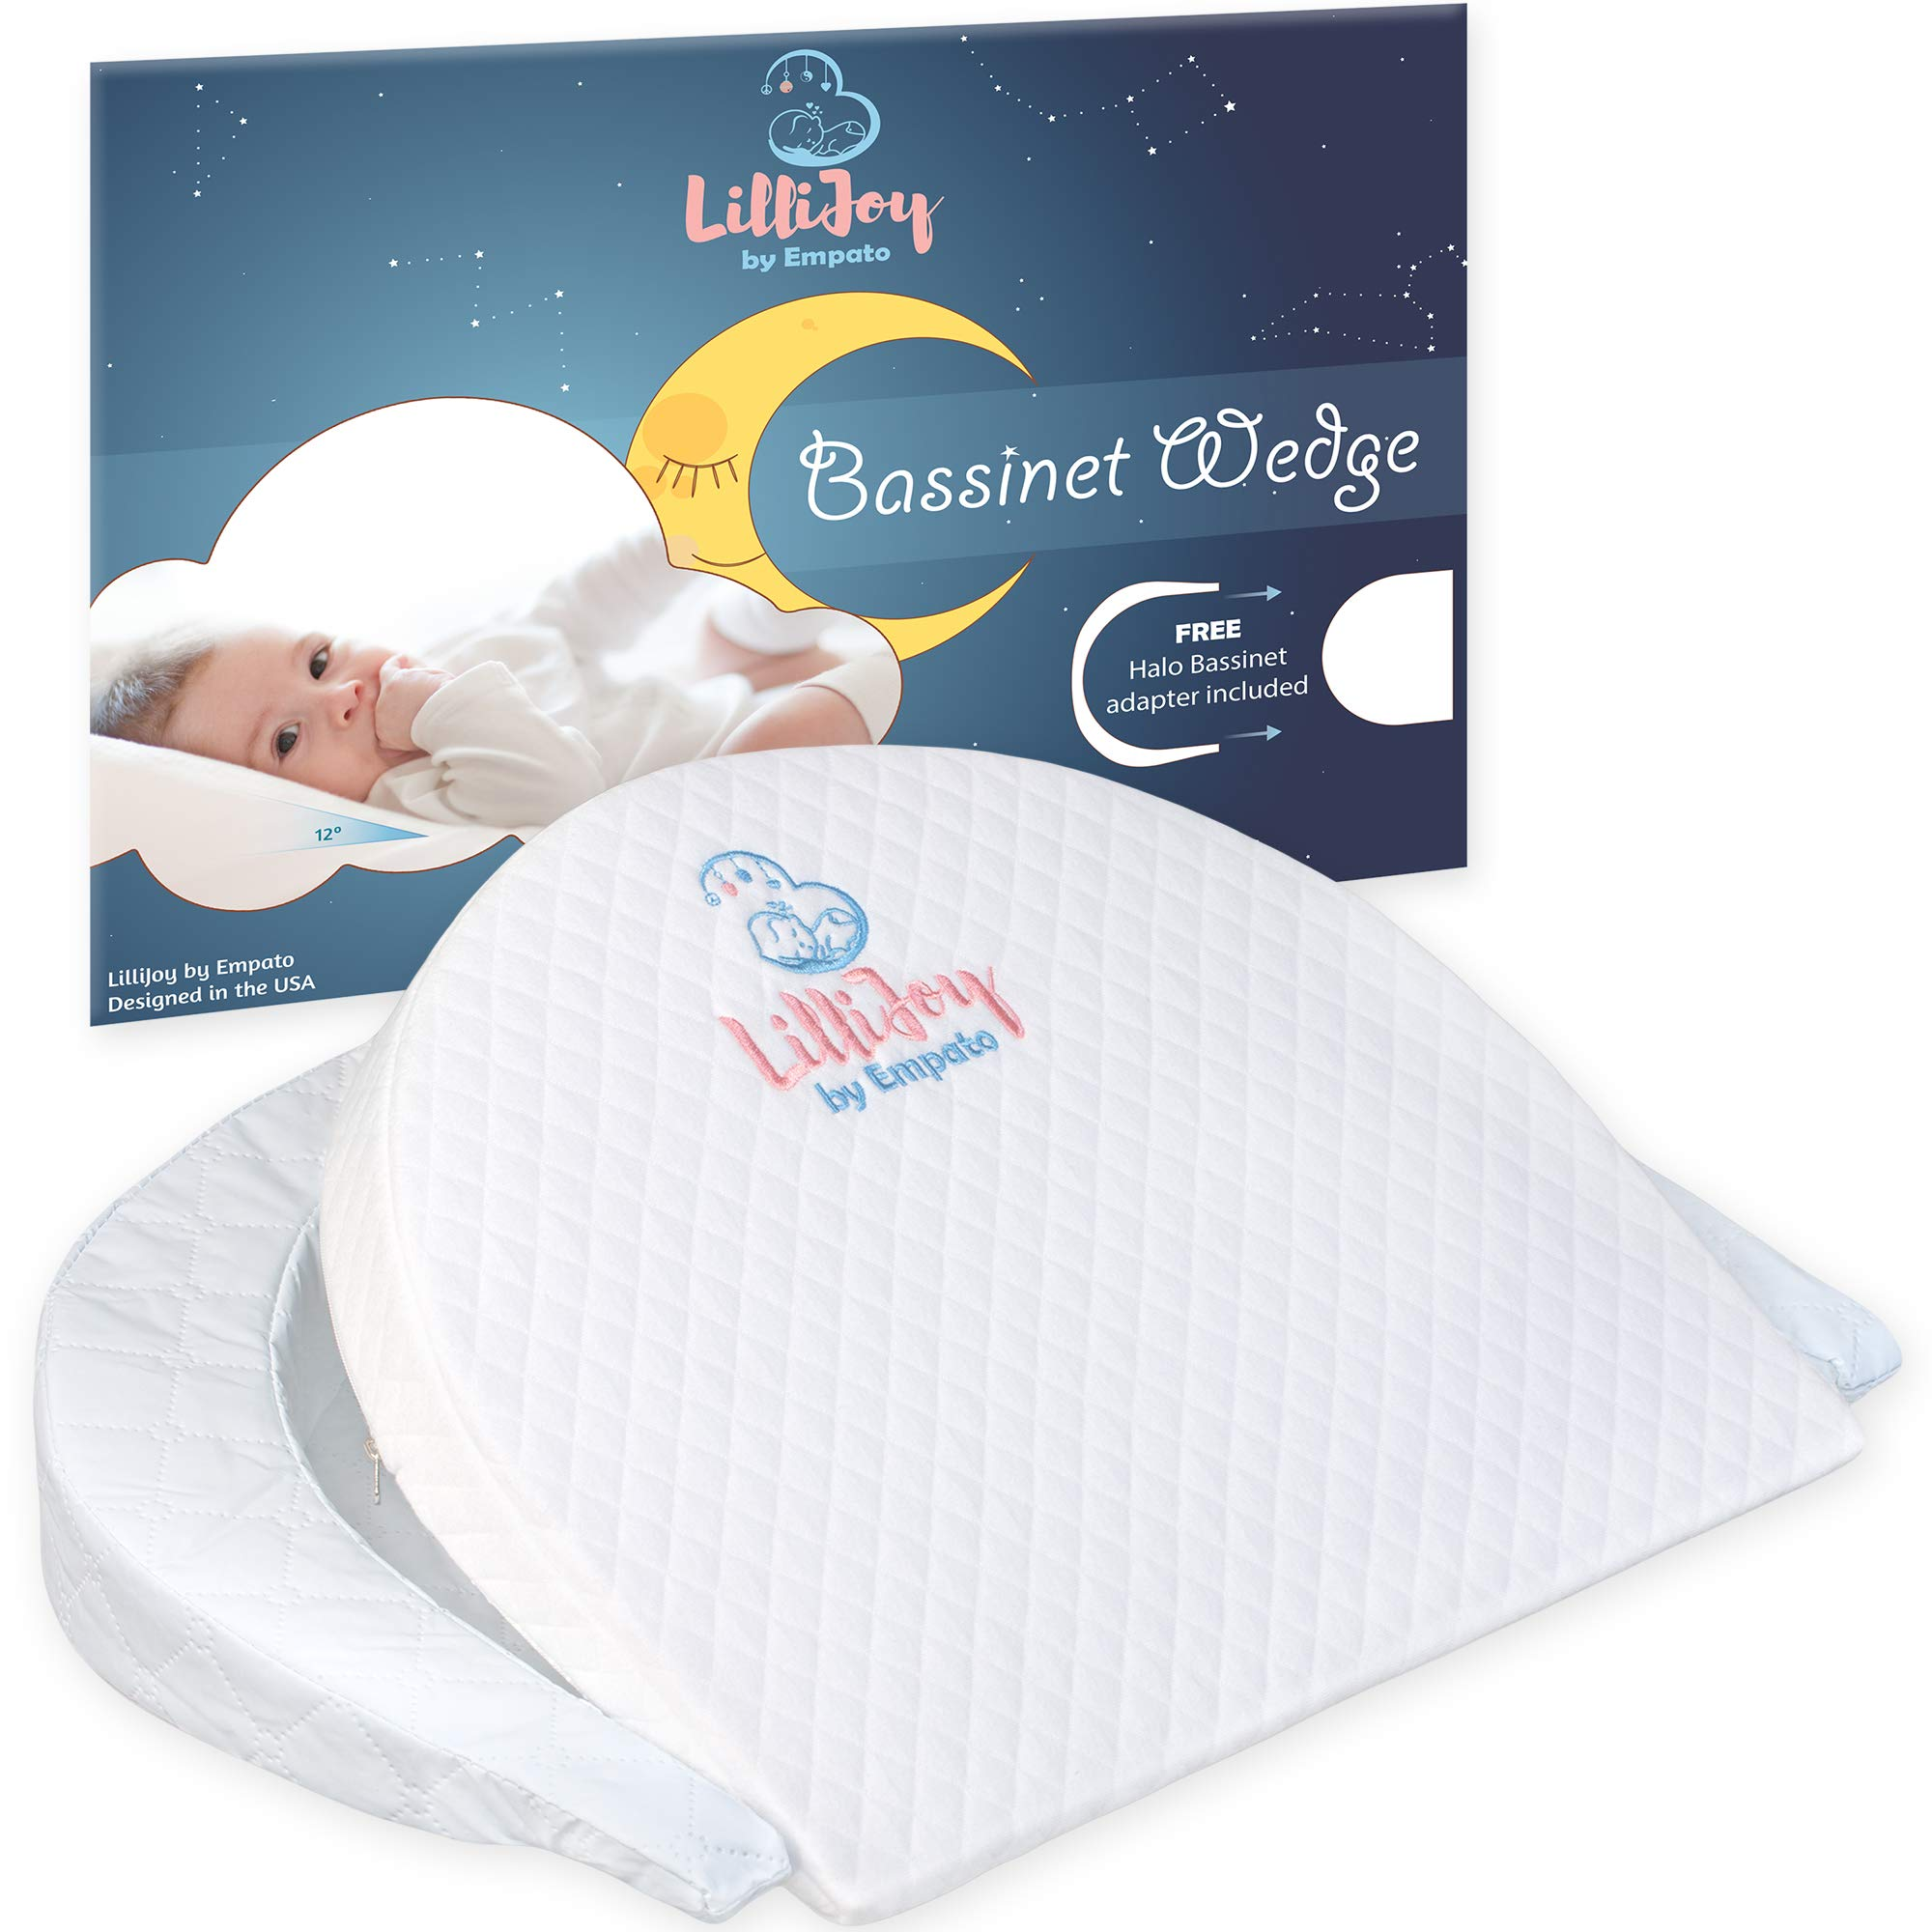 LilliJoy Premium Bassinet Wedge Pillow for Baby | Fits Halo Bassinet | 12˚ Incline Sleep Positioner for Elevated Head & Torso Support | Anti Reflux Sleeper for Infant or Newborn Colic & Congestion by LilliJoy